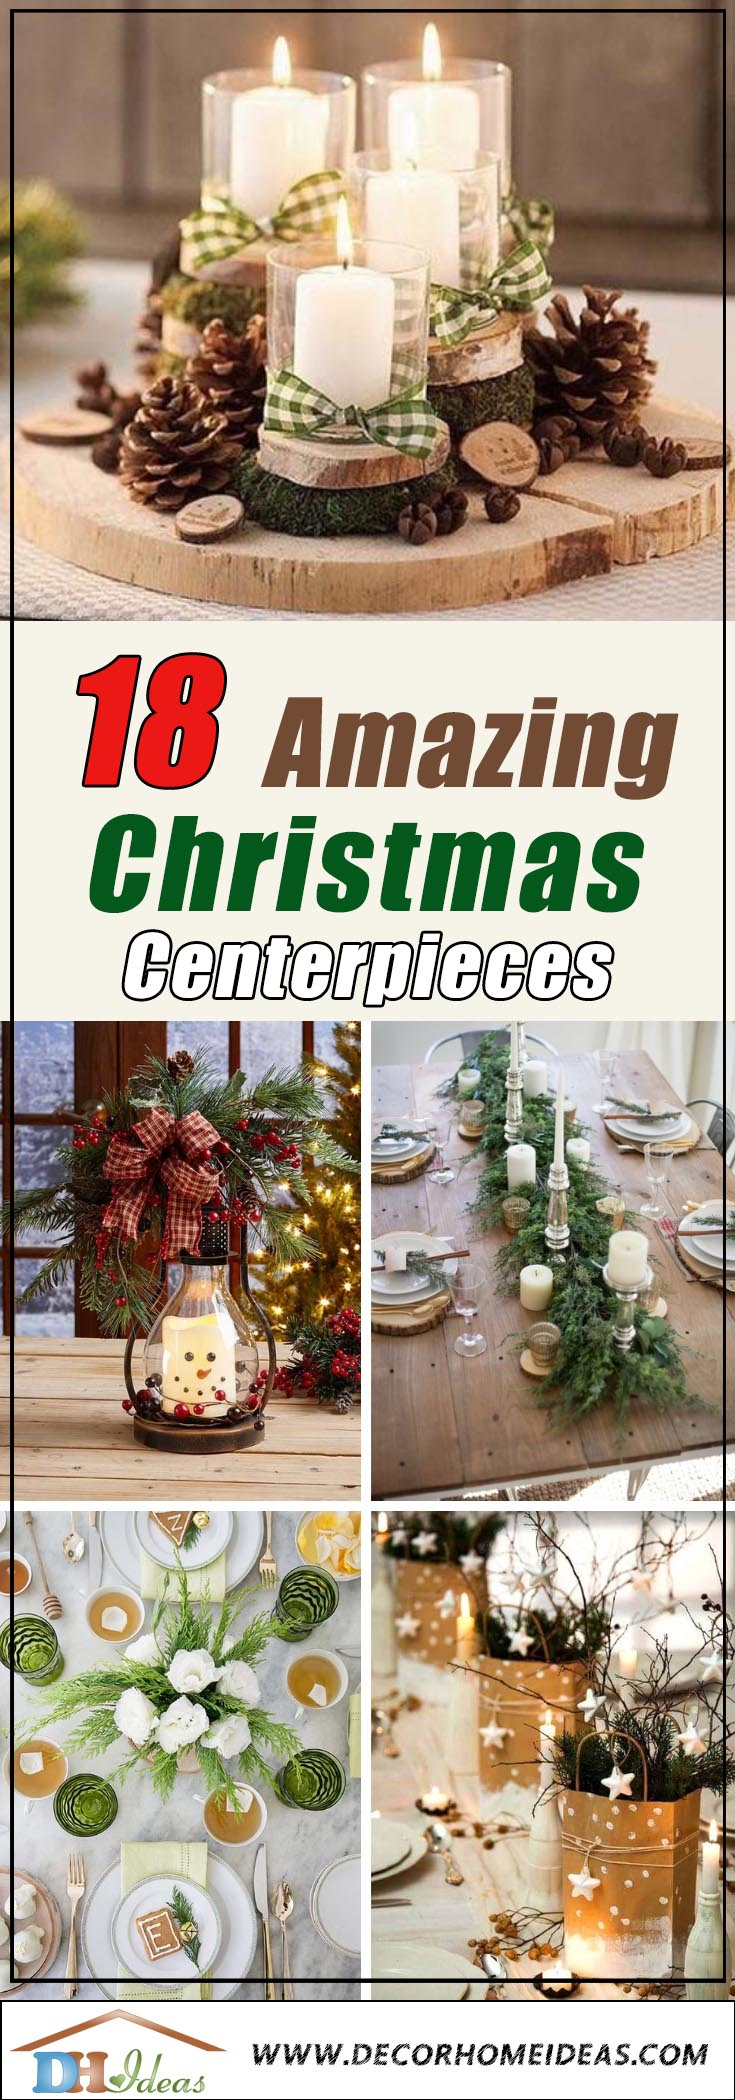 Amazing Christmas Centerpieces #Christmas #centerpiece #Christmasdecor #decorhomeideas